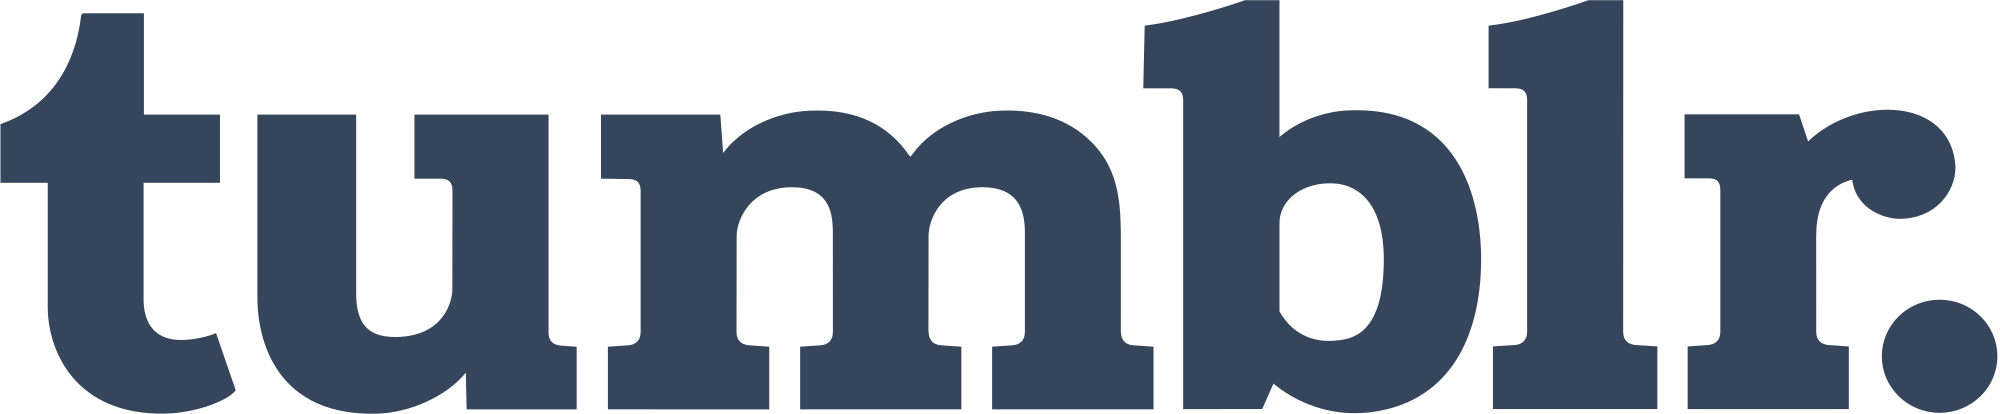 Tumblr logo png. File svg wikimedia commons